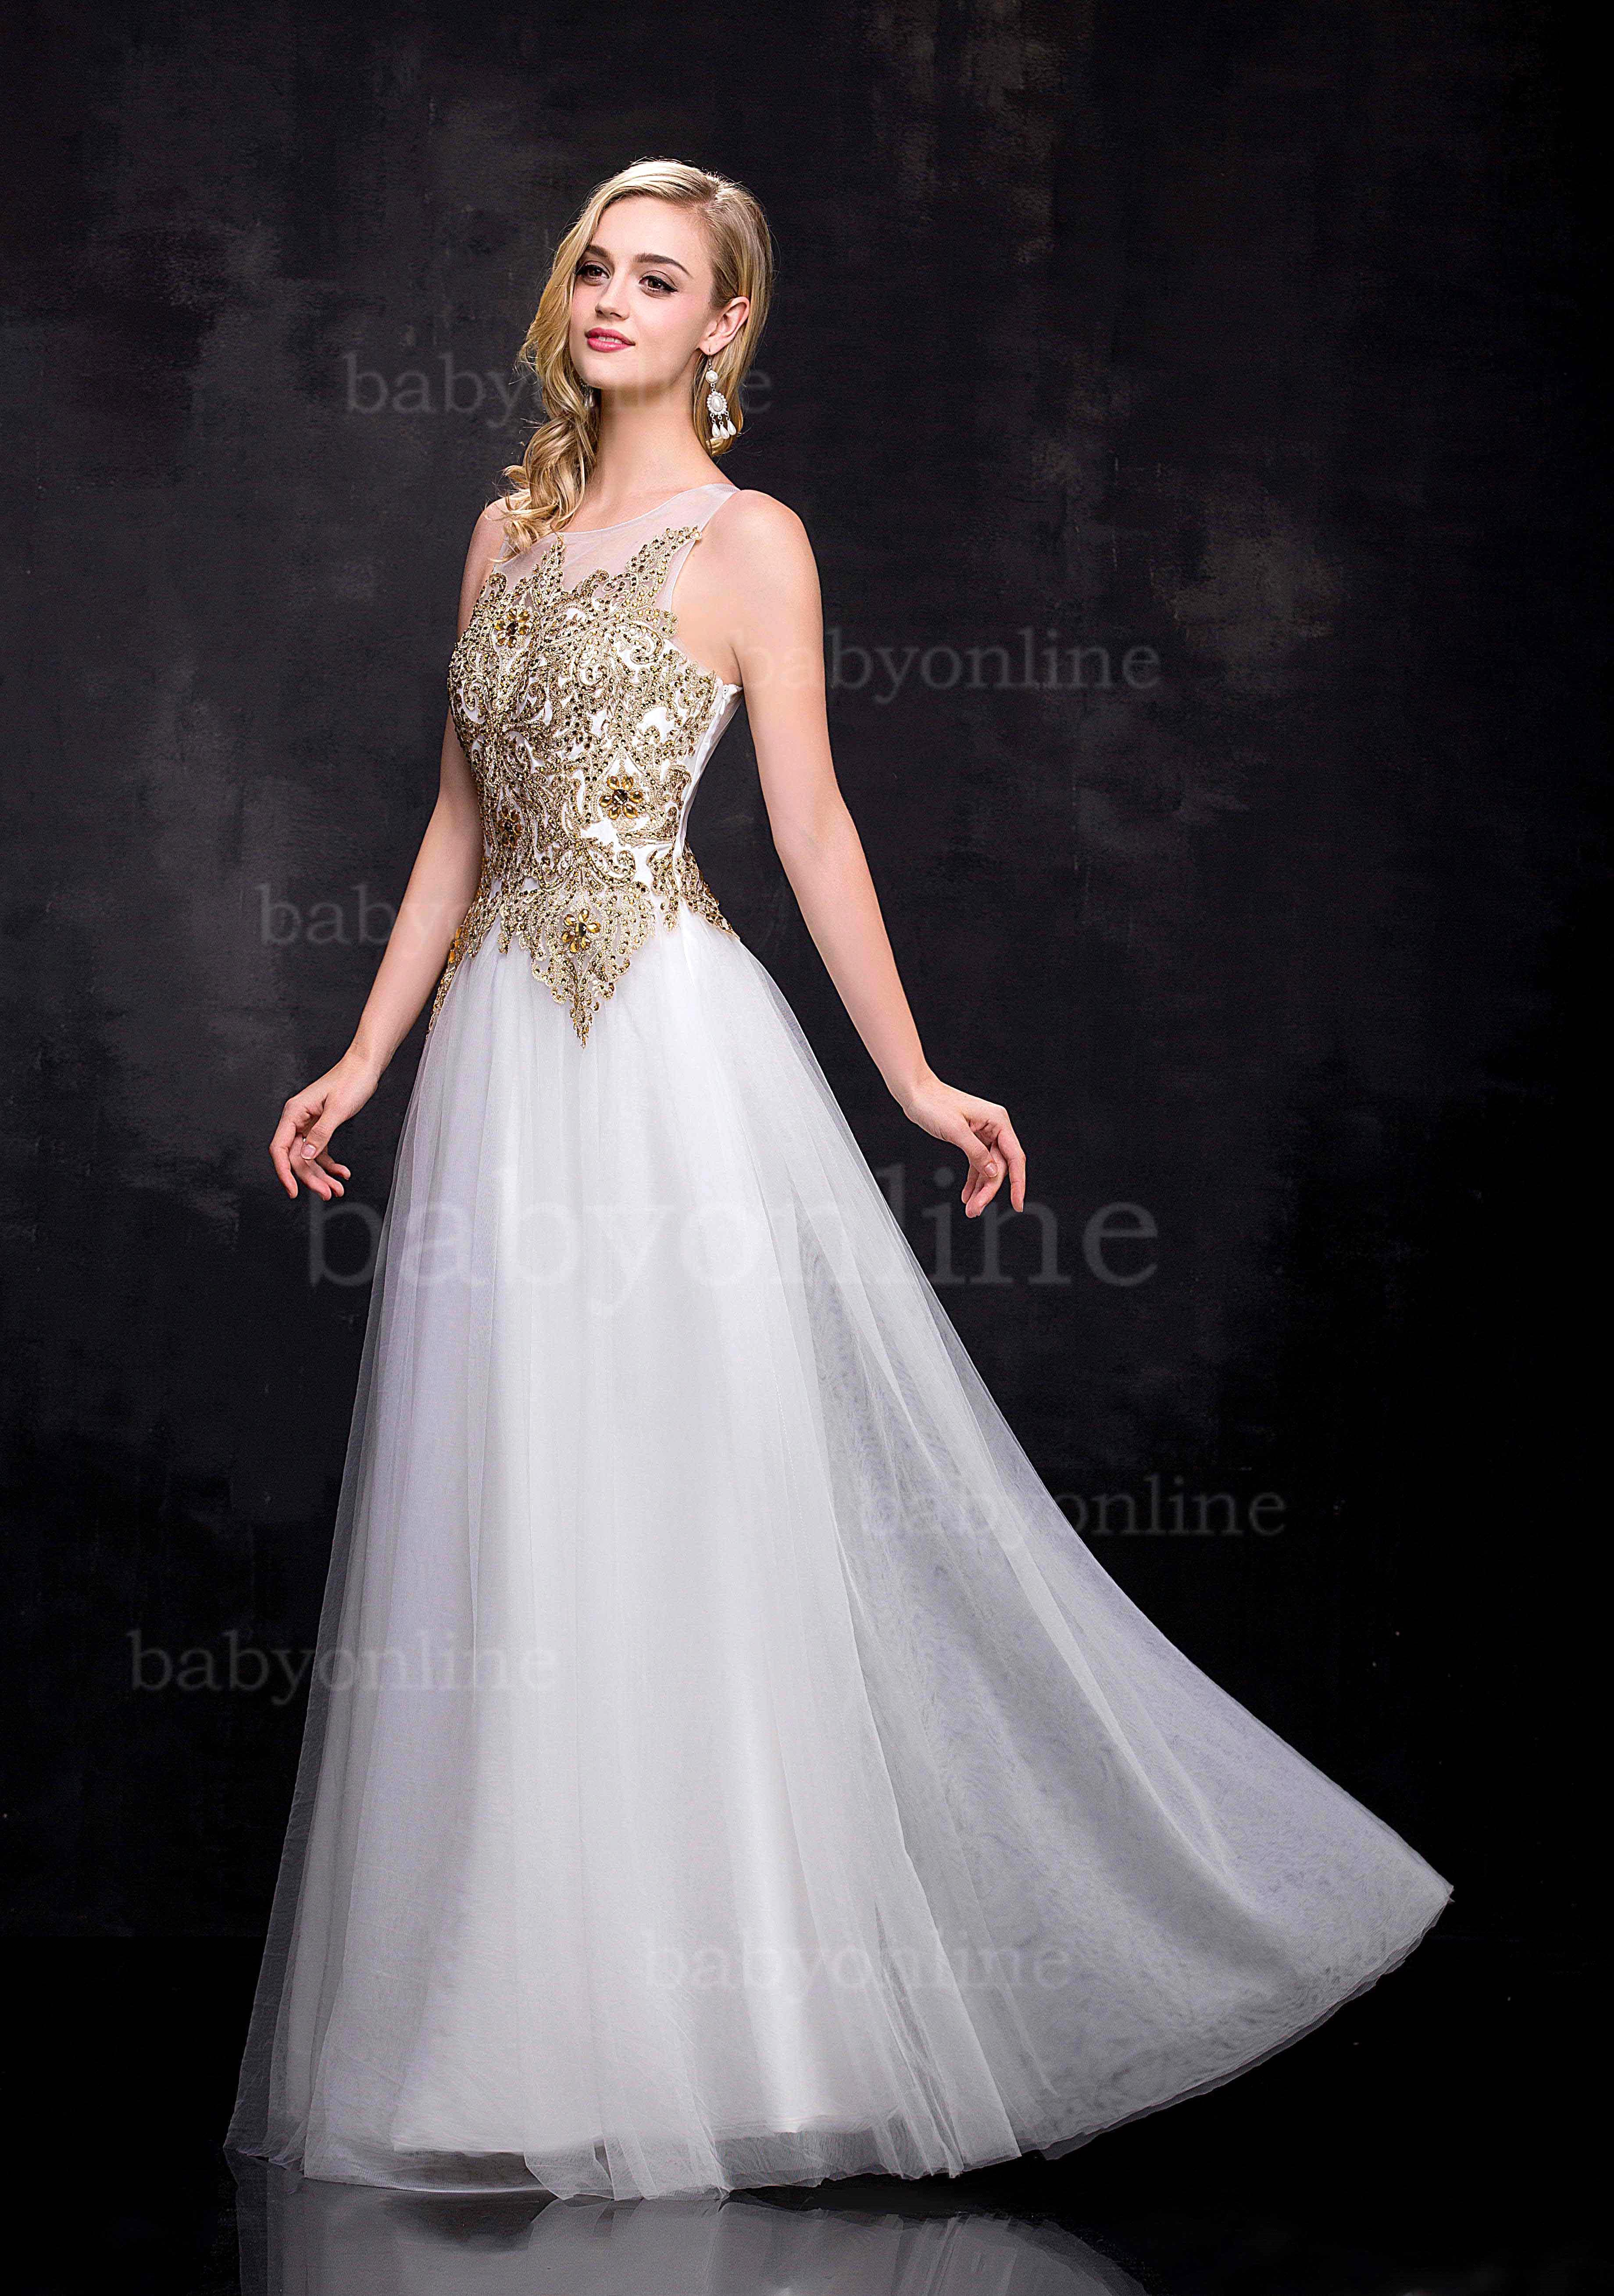 Wedding Gold And White Prom Dresses aliexpress com buy 100 real sample dress white prom 2015 a line gold lace beaded sheer open back abendkleider f